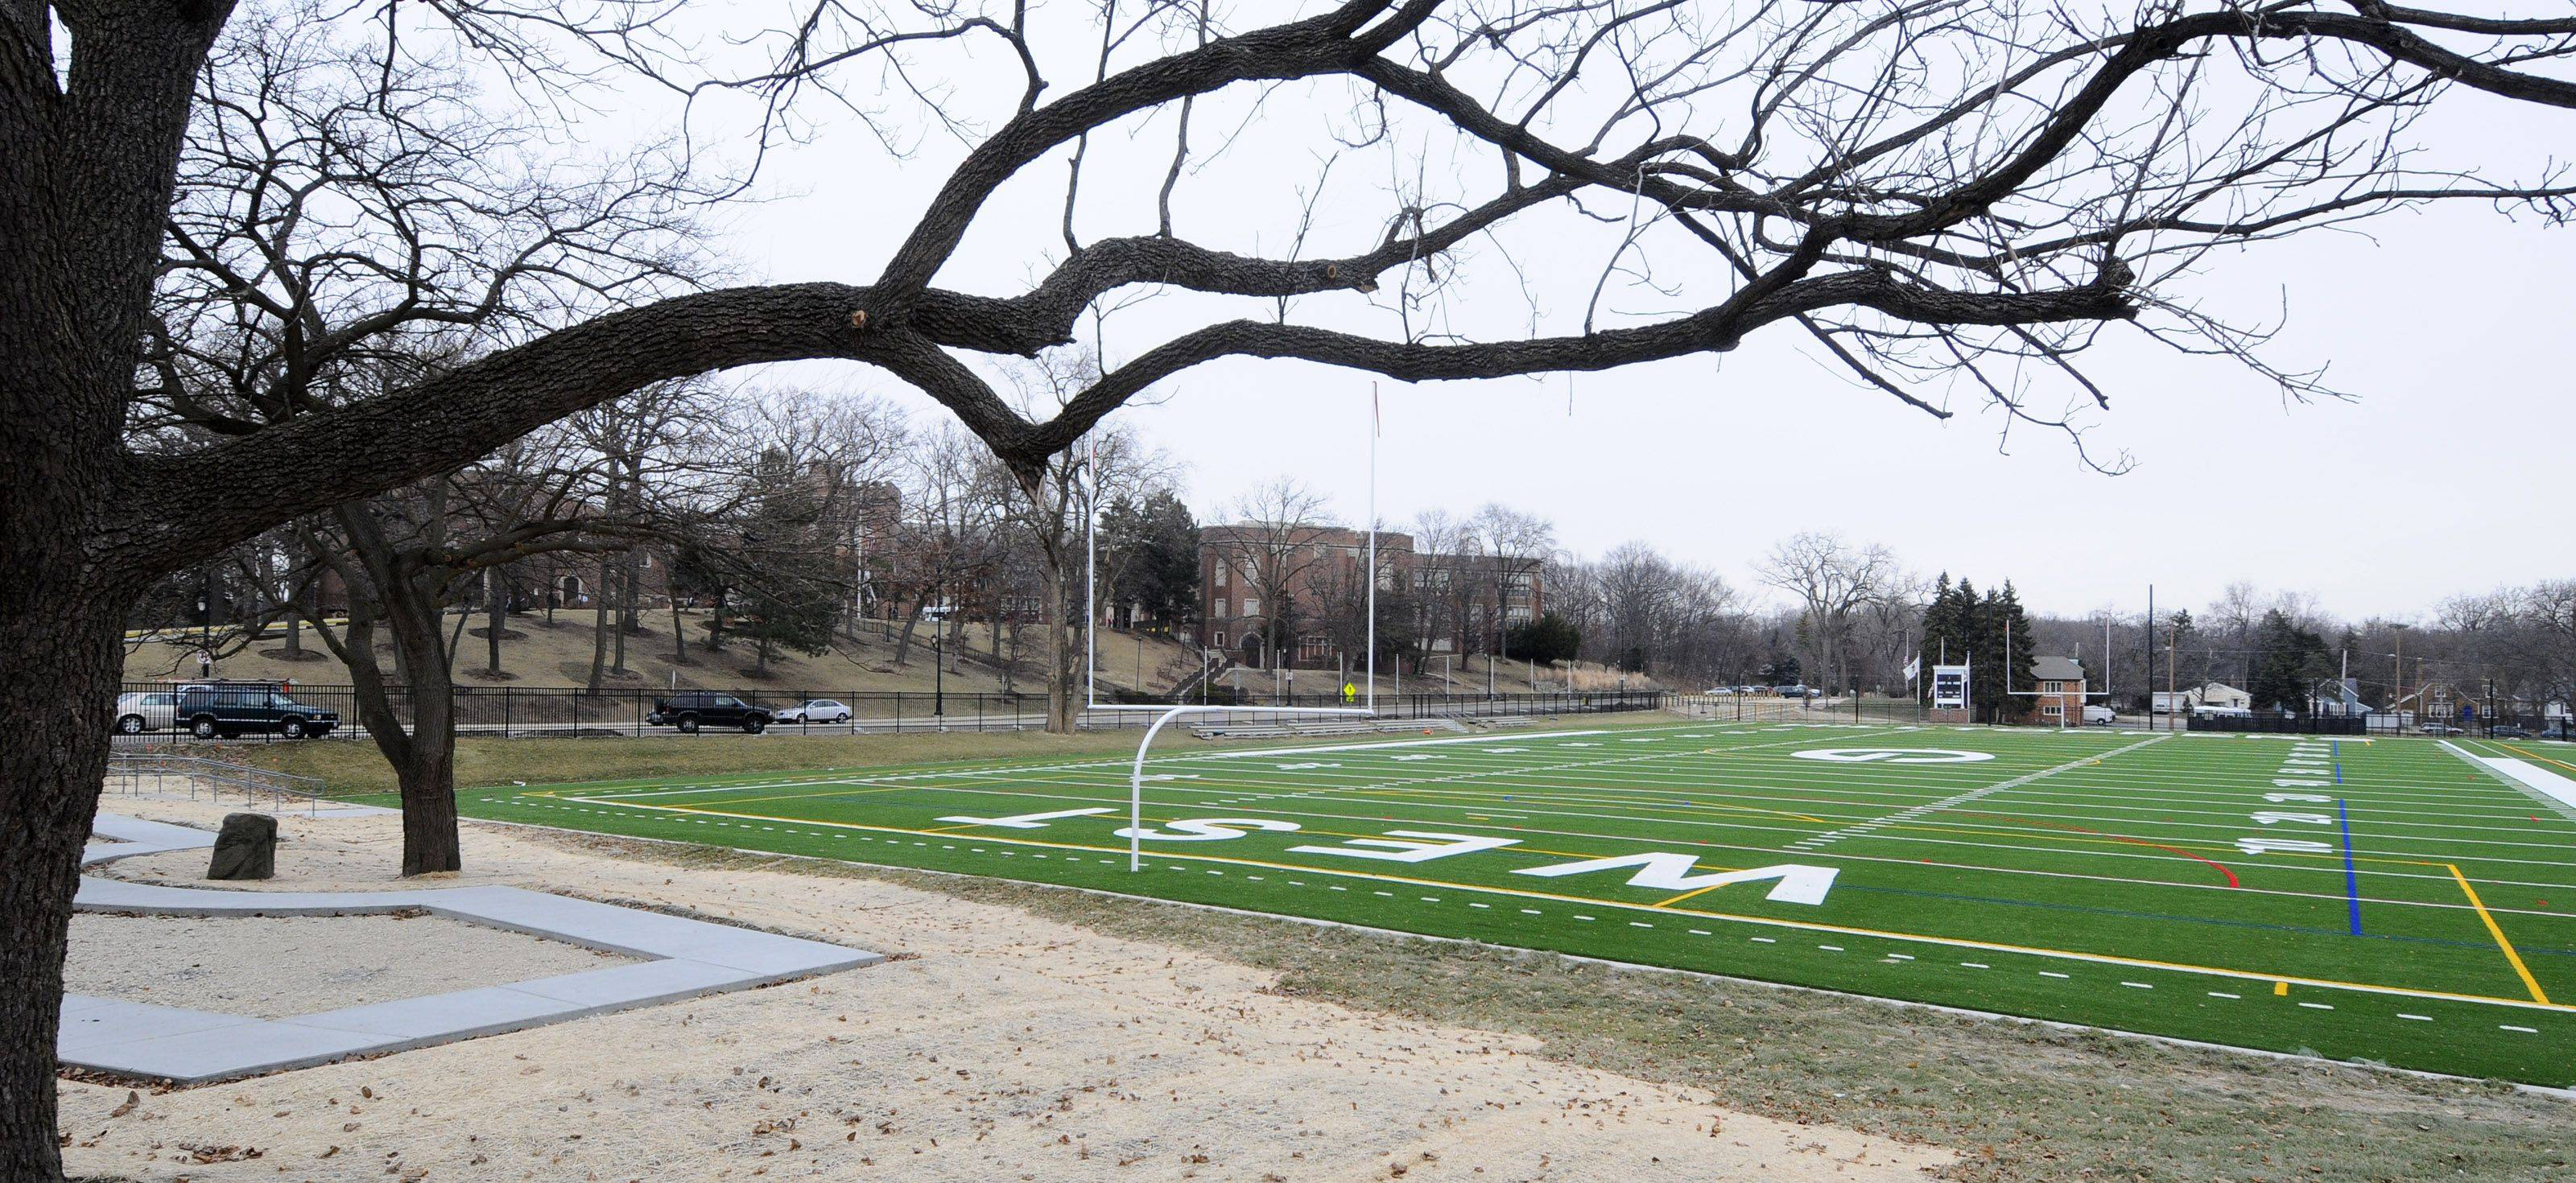 Glenbard High School District 87 is seeking permission from Glen Ellyn to install lights at Glenbard West High School's practice field.